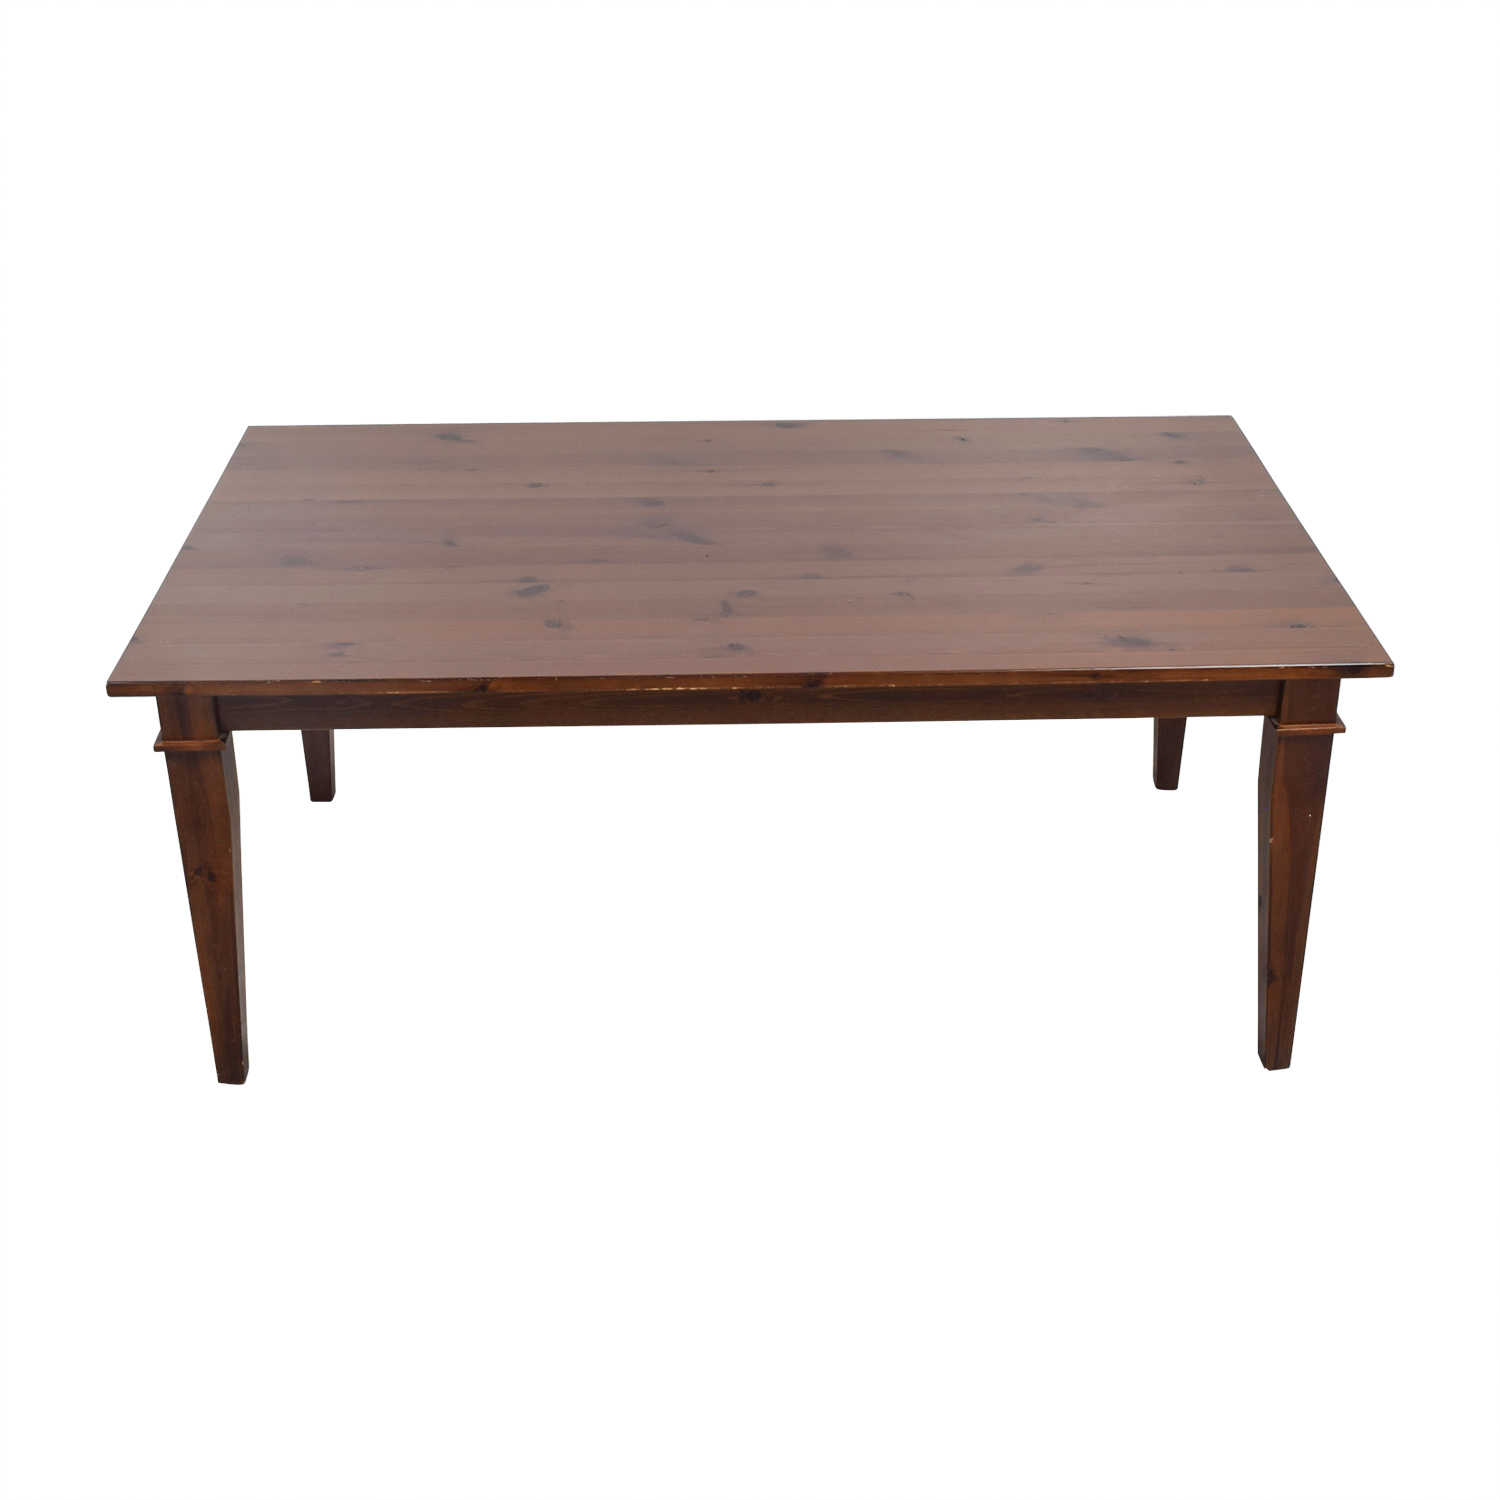 Pottery Barn Pottery Barn Dining Table with Glass Top dimensions